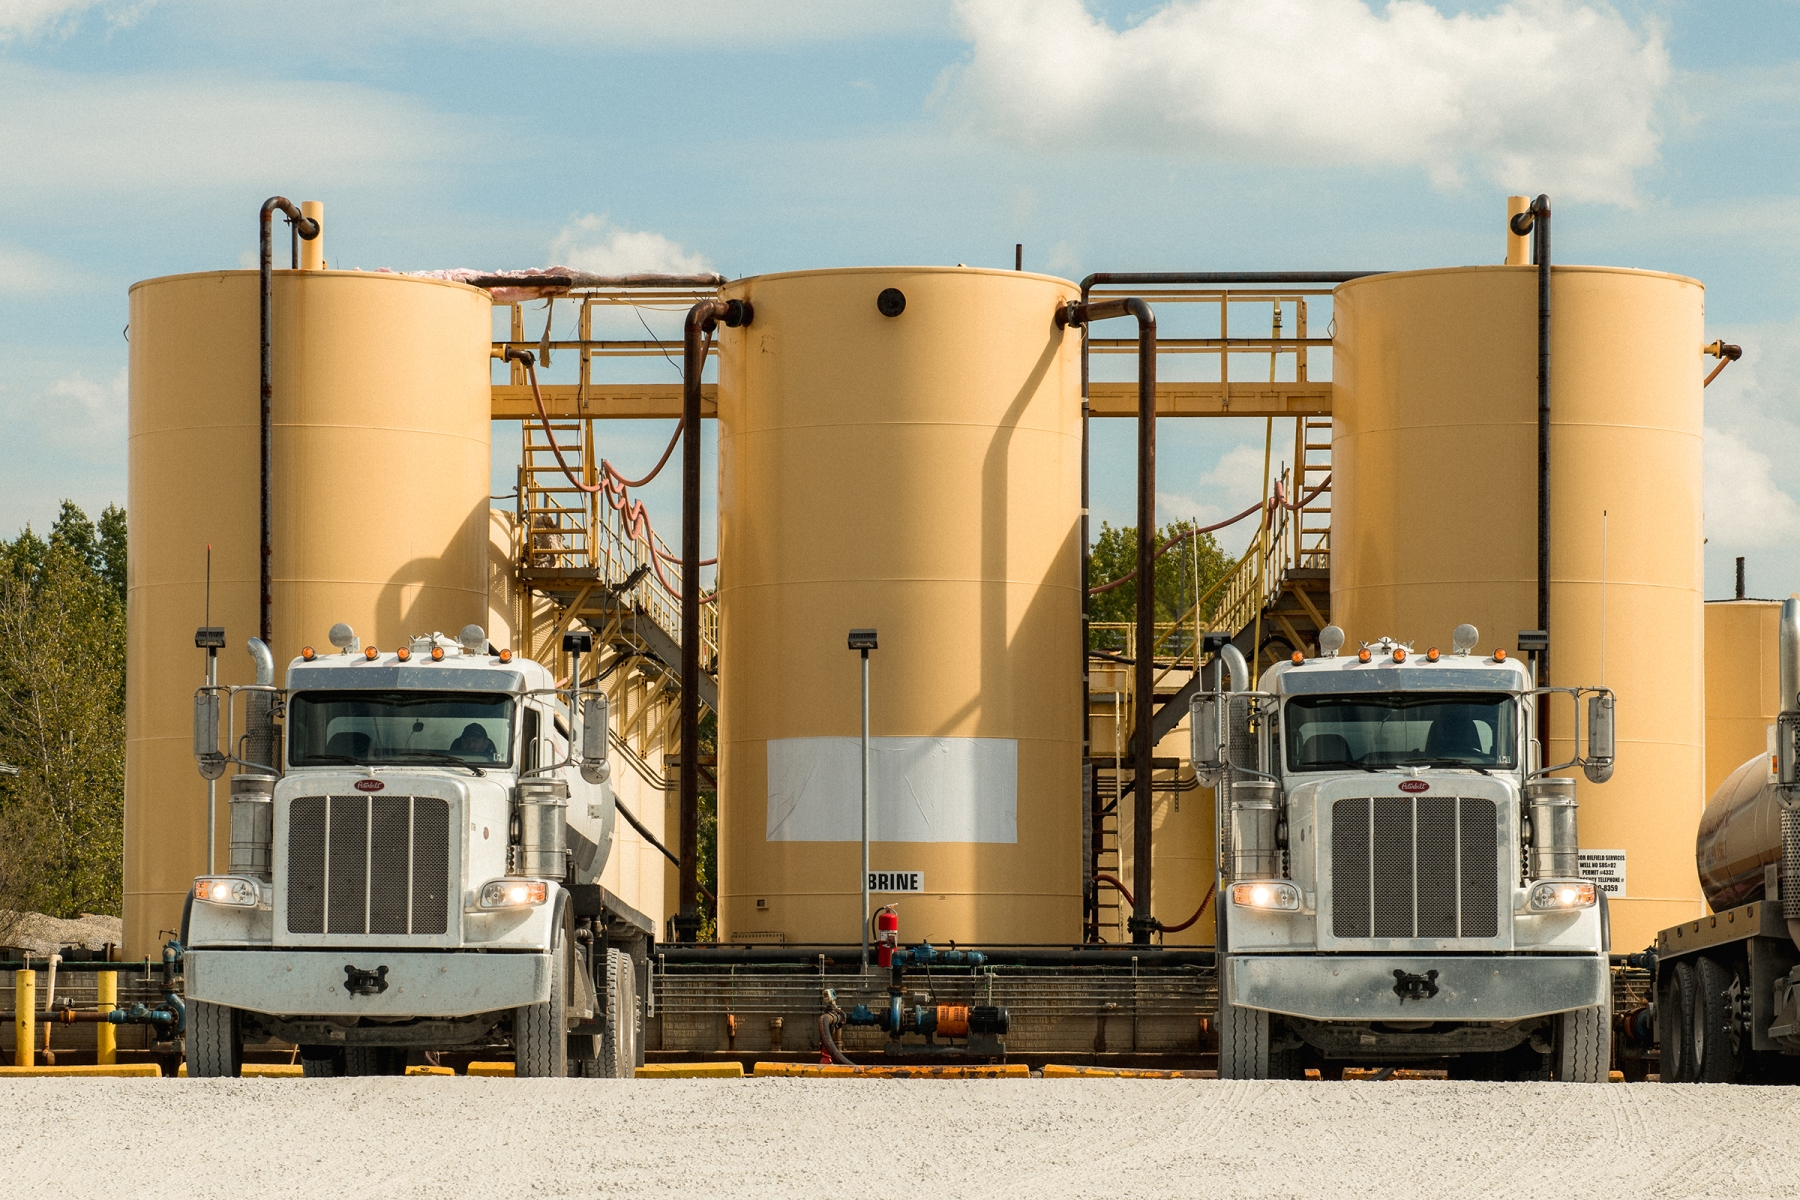 October 2, 2019: Brine trucks unload waste water at an Injection well in Cambridge, OH. George Etheredge for Rolling Stone